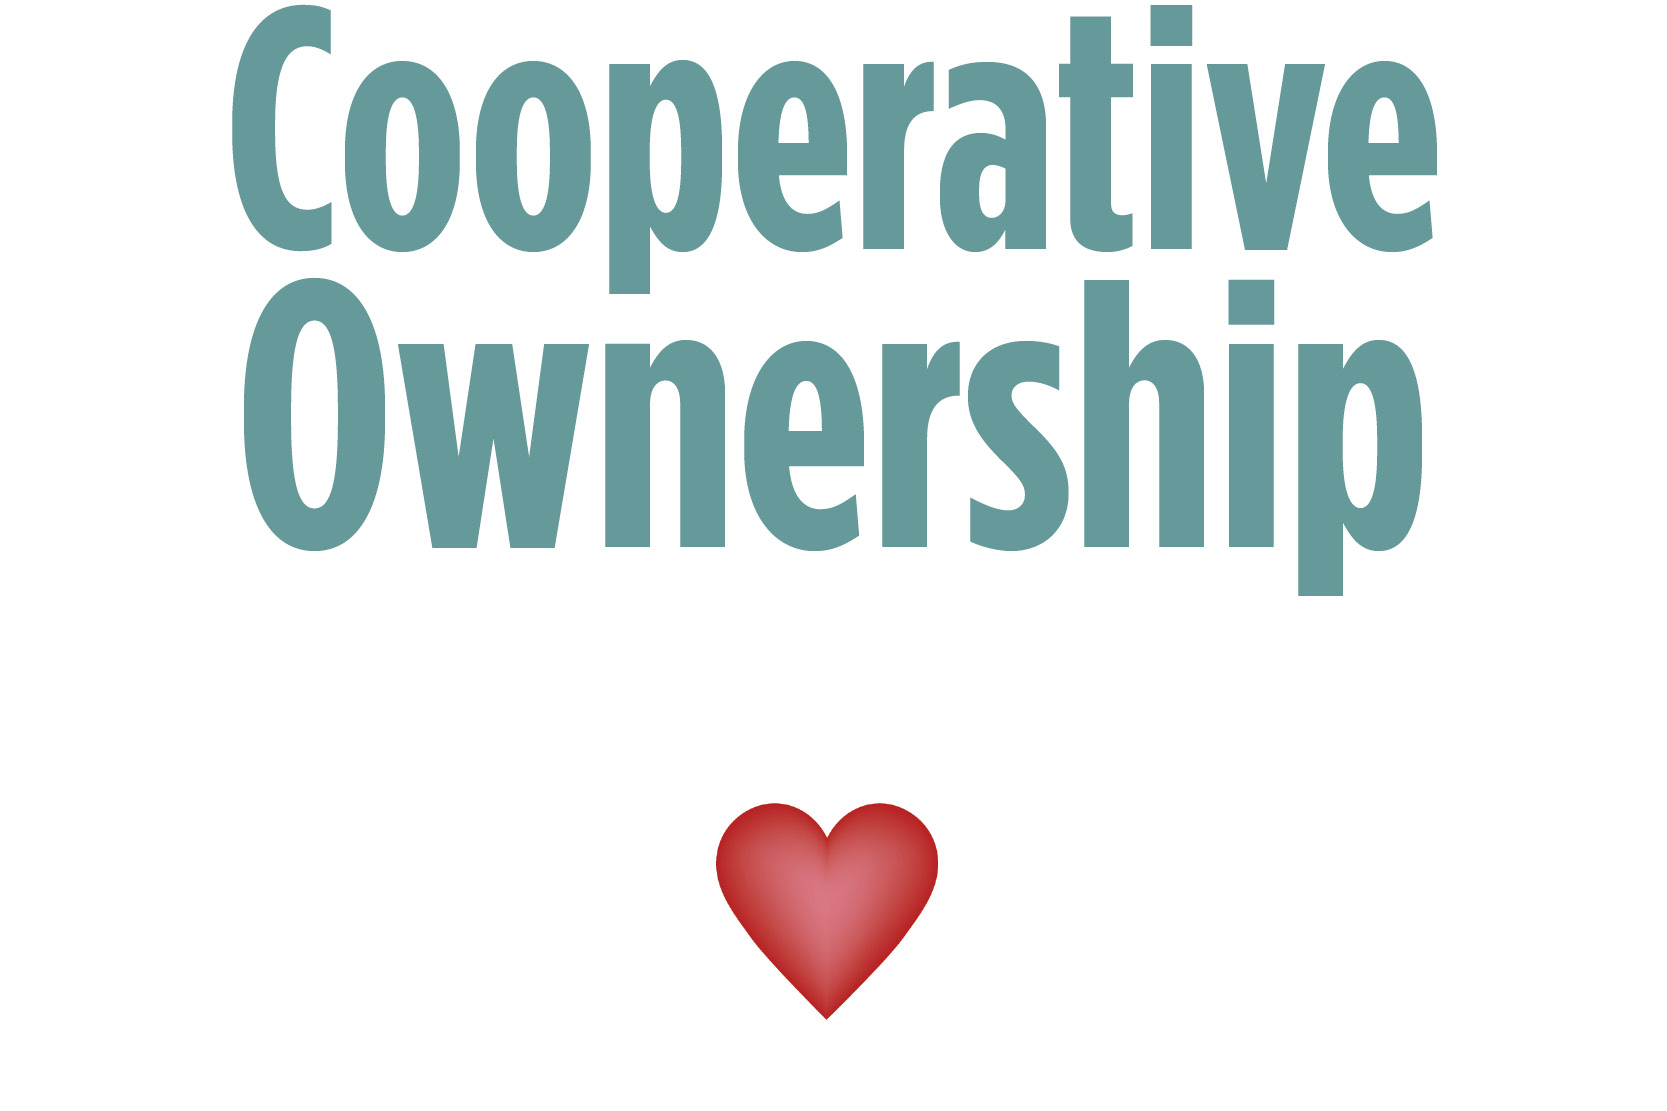 Cooperative Ownership